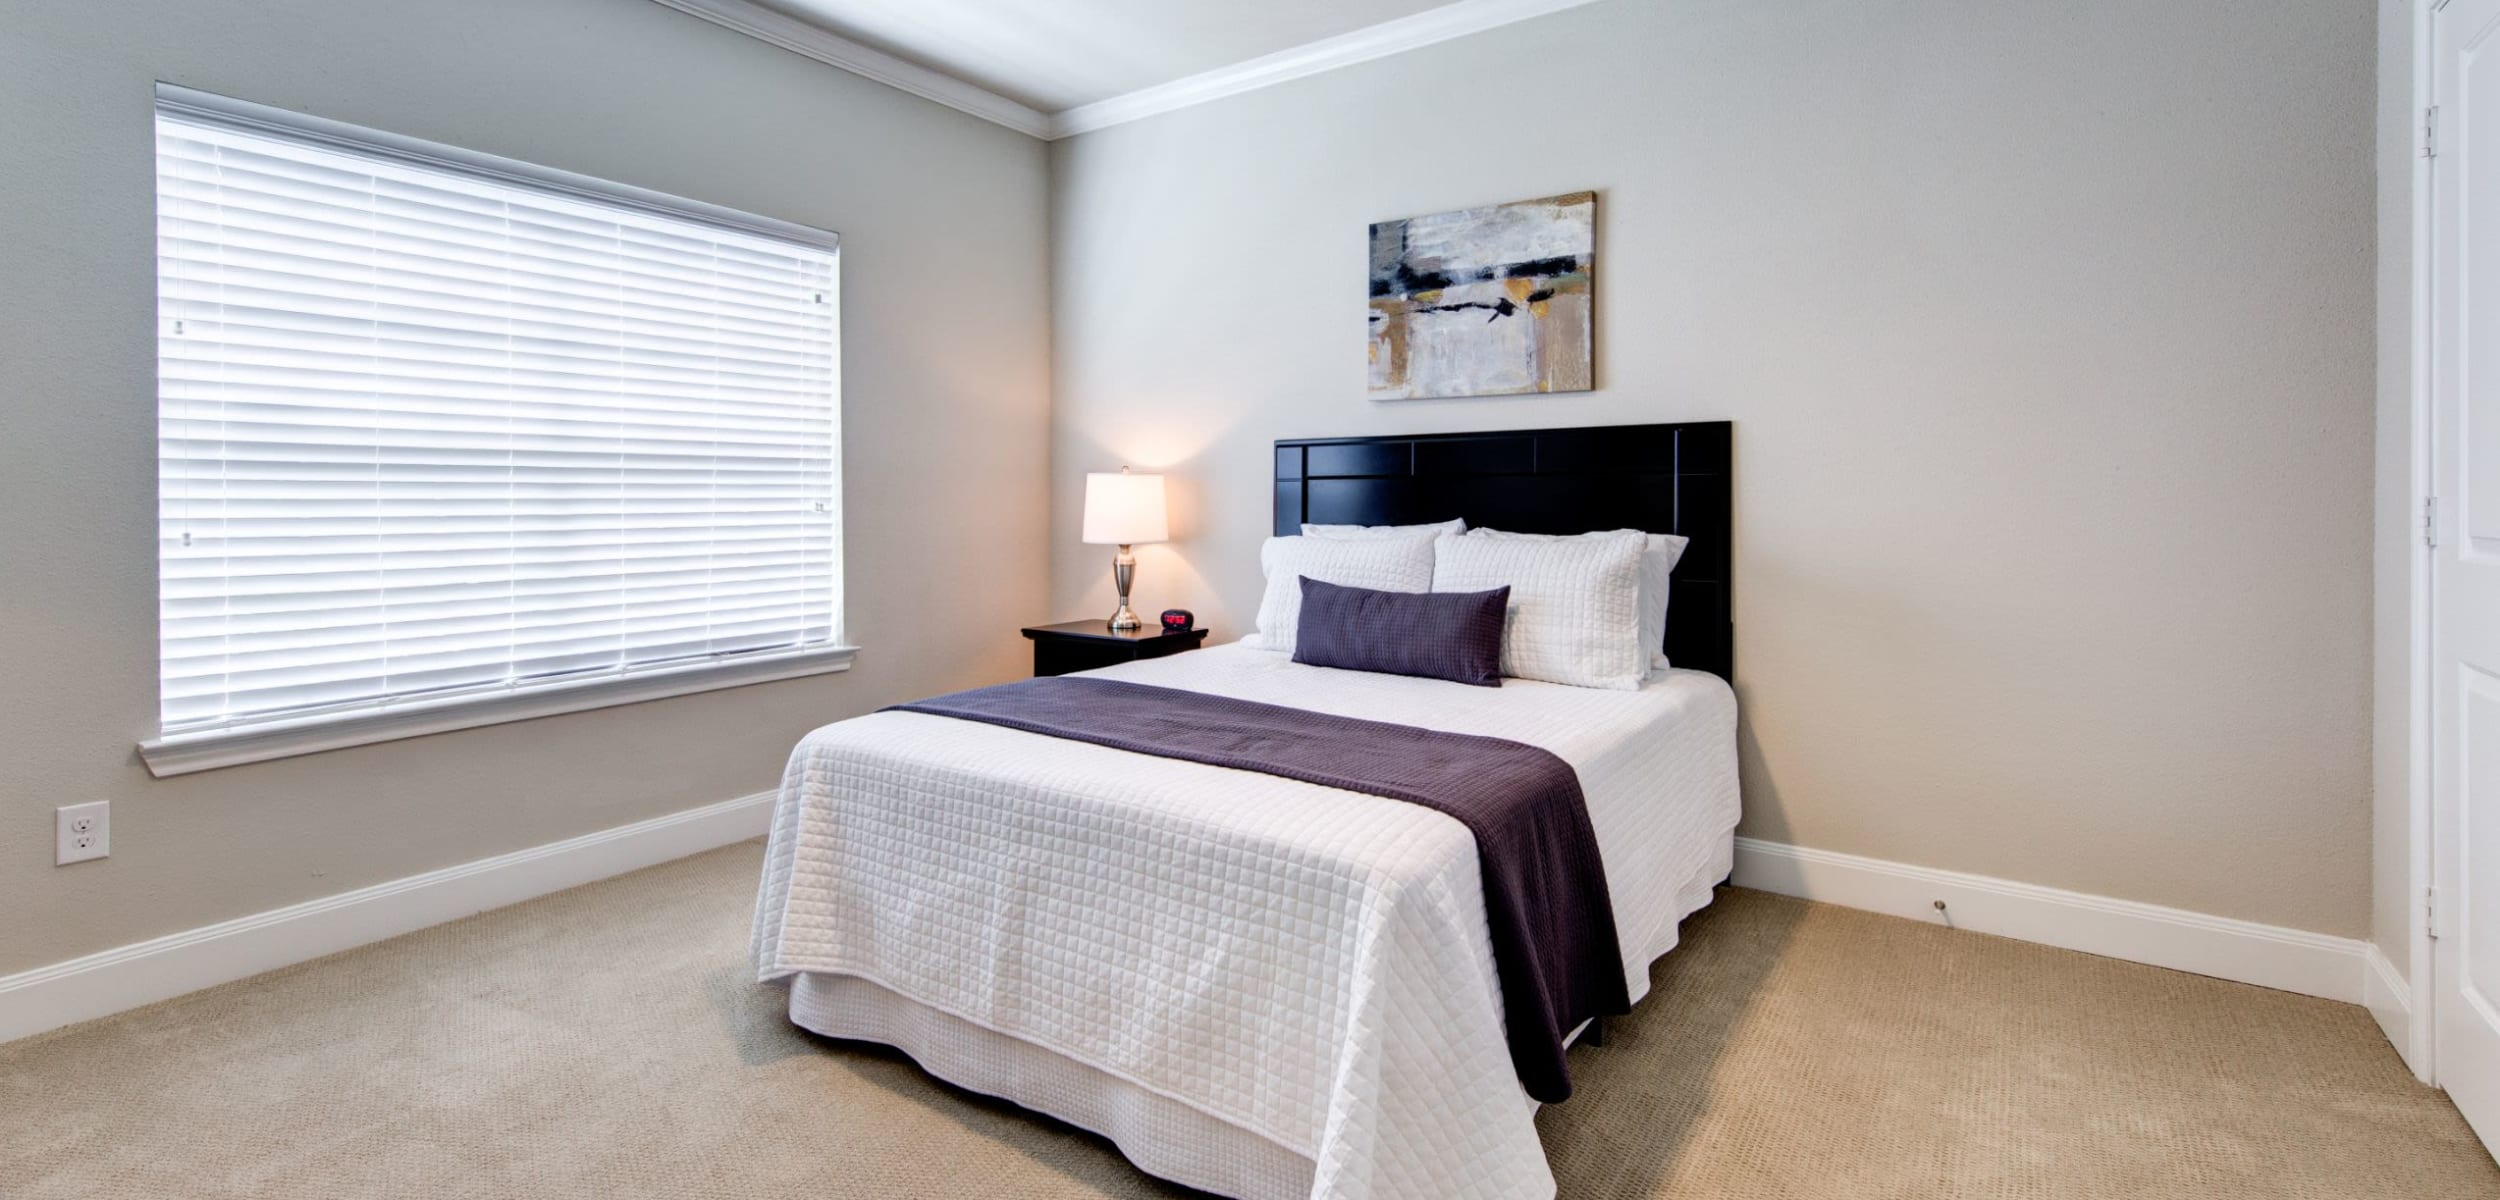 Bedroom with a large window at Marquis on Memorial in Houston, Texas